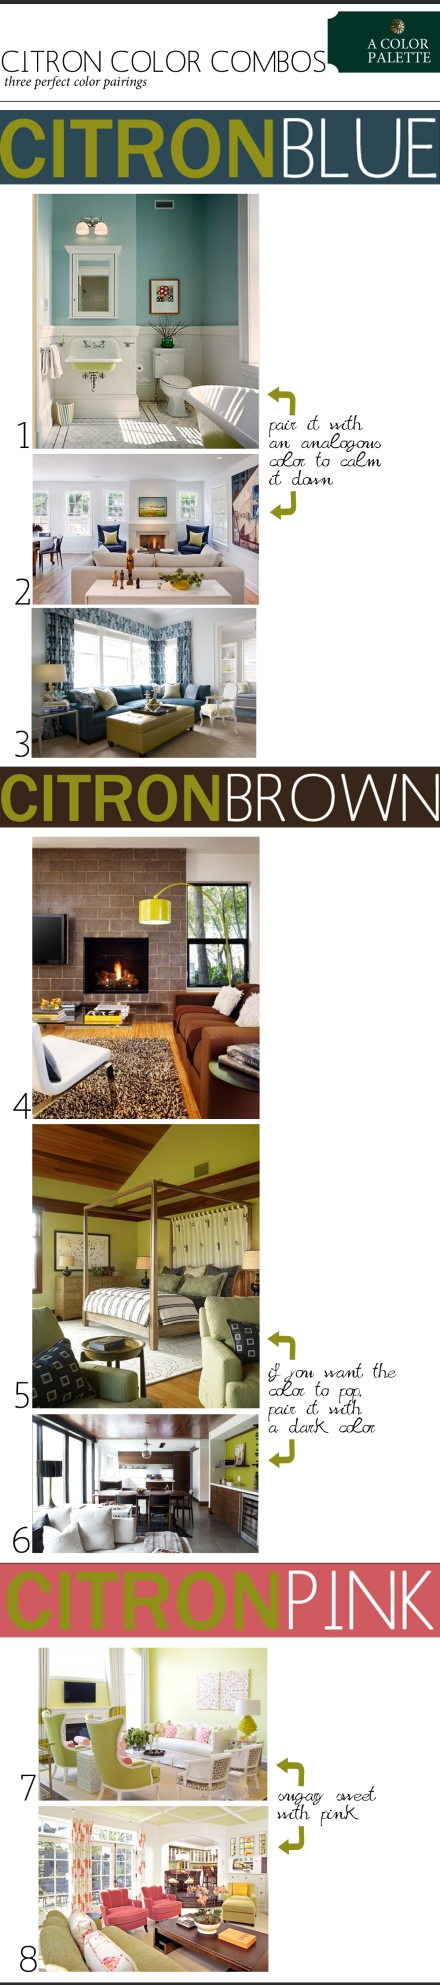 citron color combinations copy